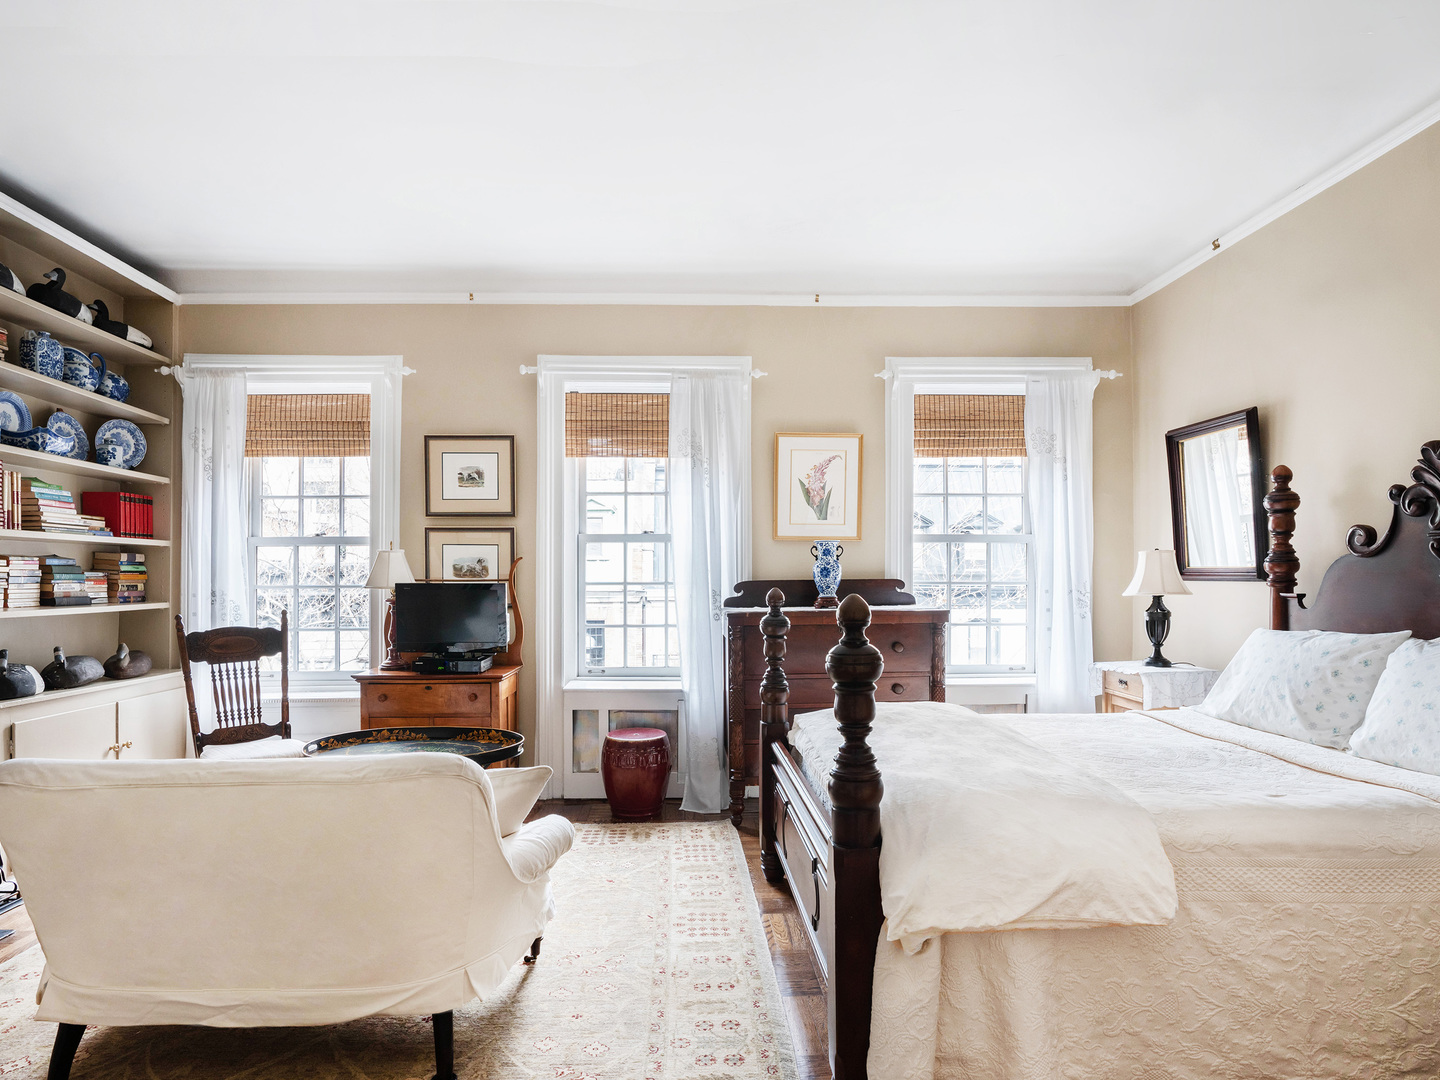 A living room filled with furniture and a bed in a bedroom at 1871 House.